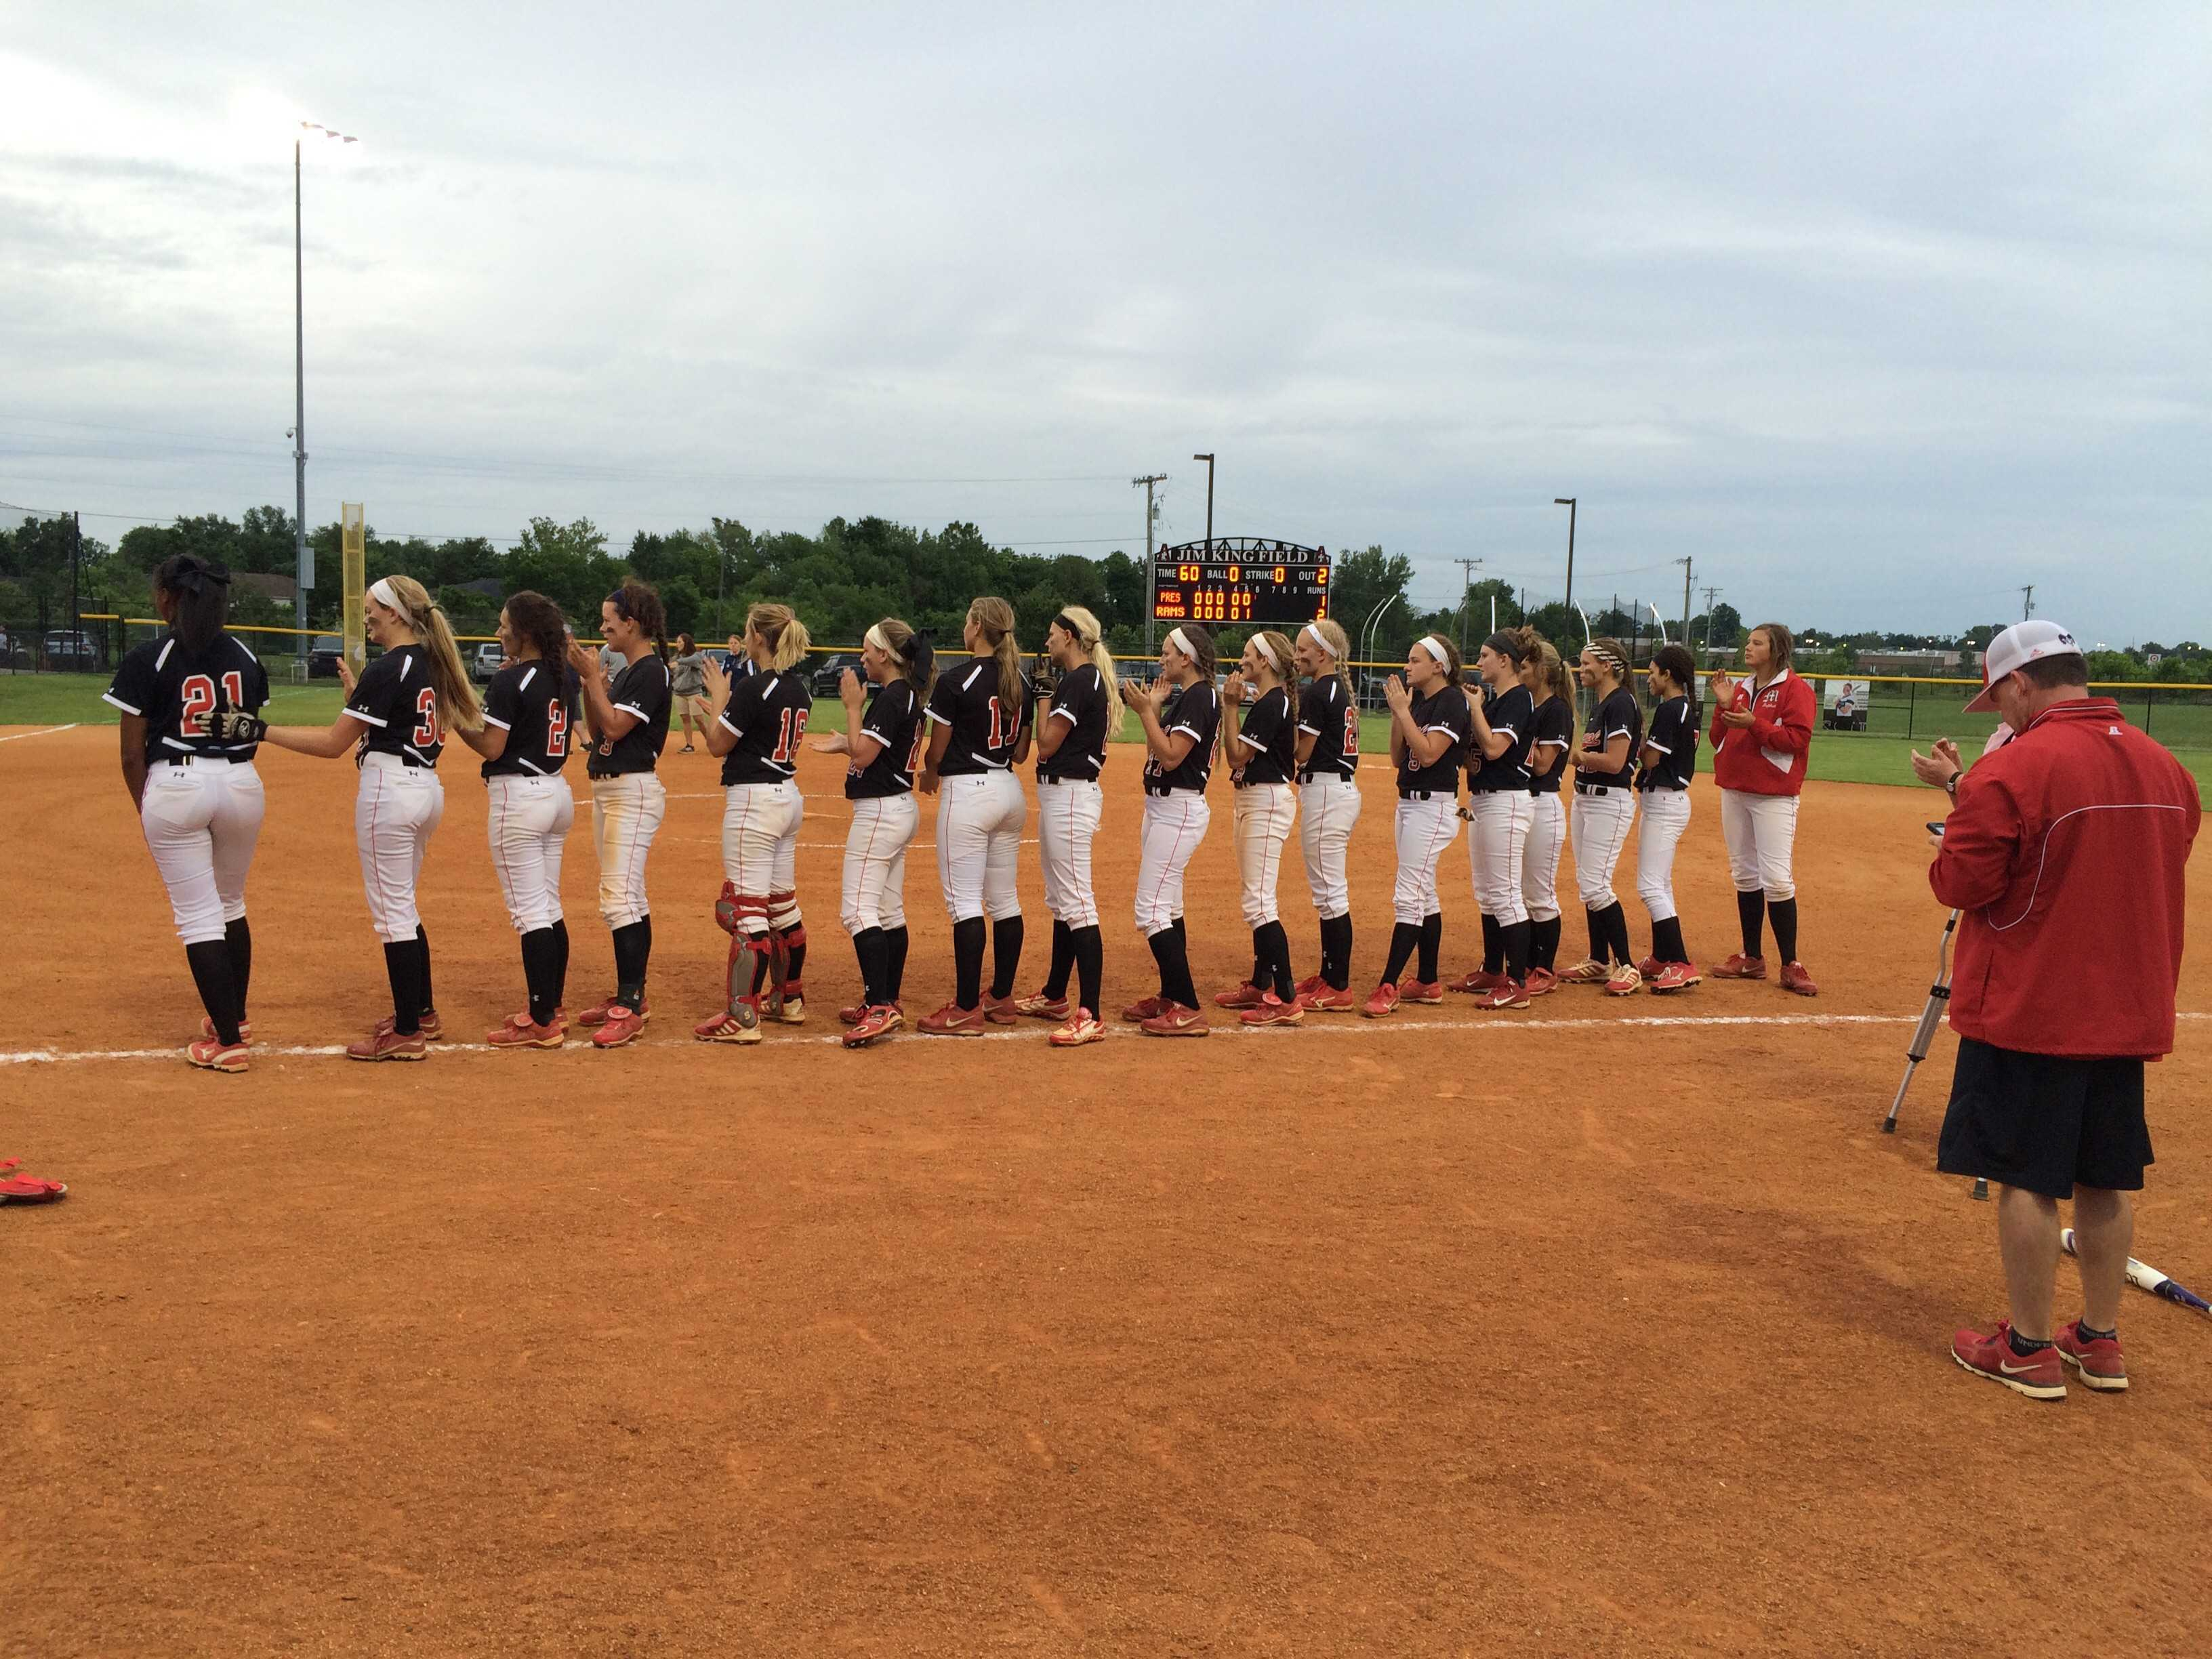 The duPont Manual softball team lines up after the game to be honored as the 25th District champions. This photo was taken pre COVID-19. Photo by RJ Radcliffe